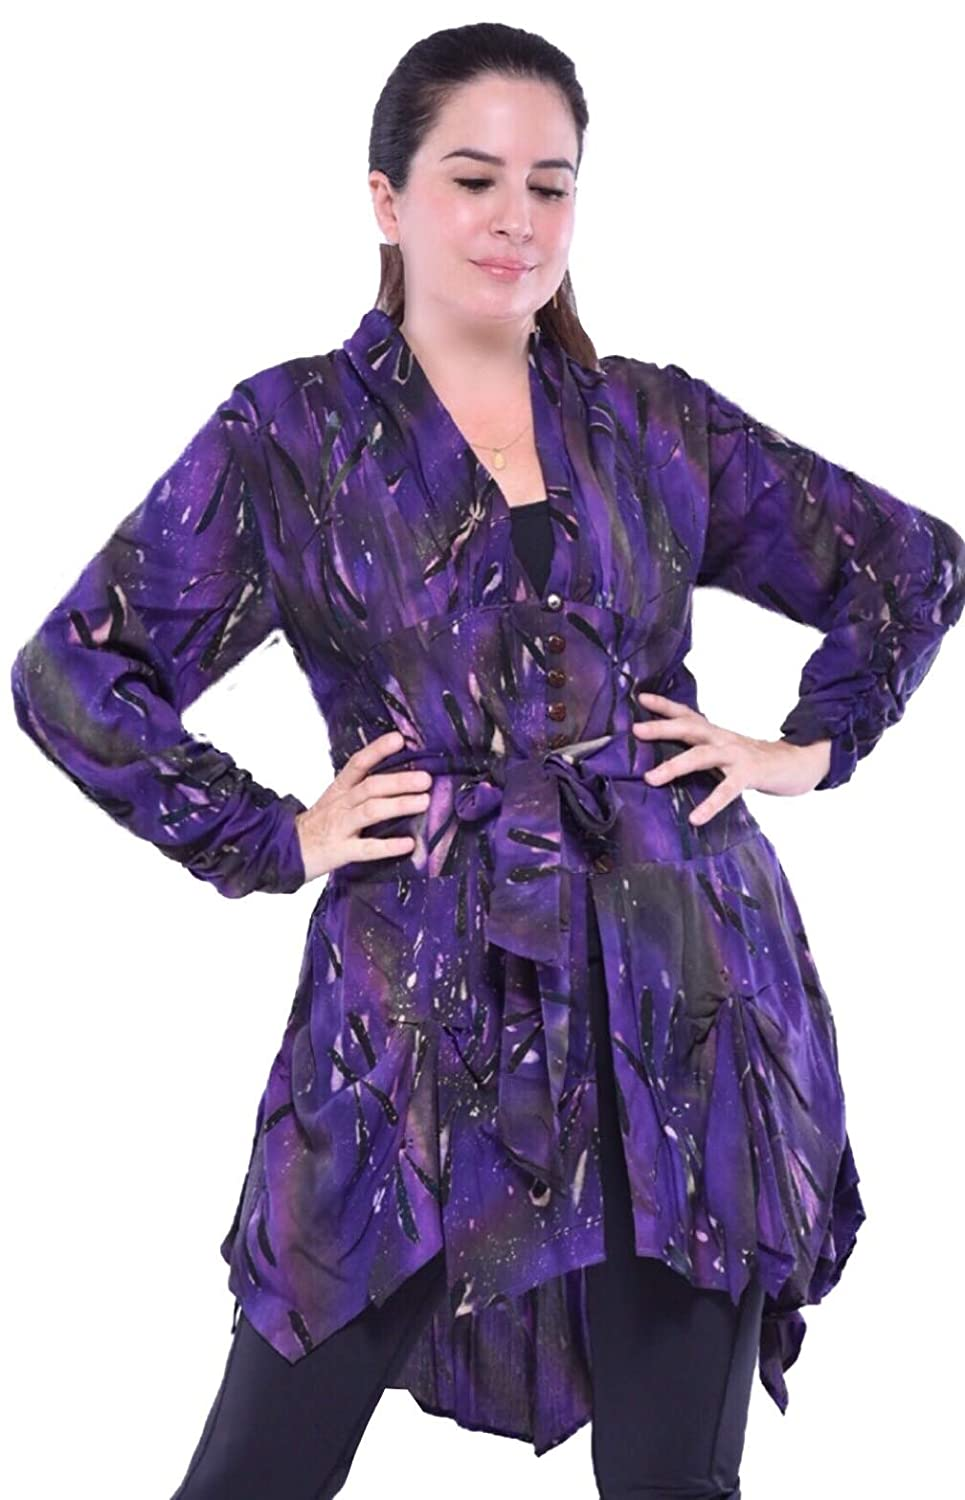 Dark Purple LOTUSTRADERS Fashion Jacket Blouse Button Down Tie Belt Batik Hippy Z363